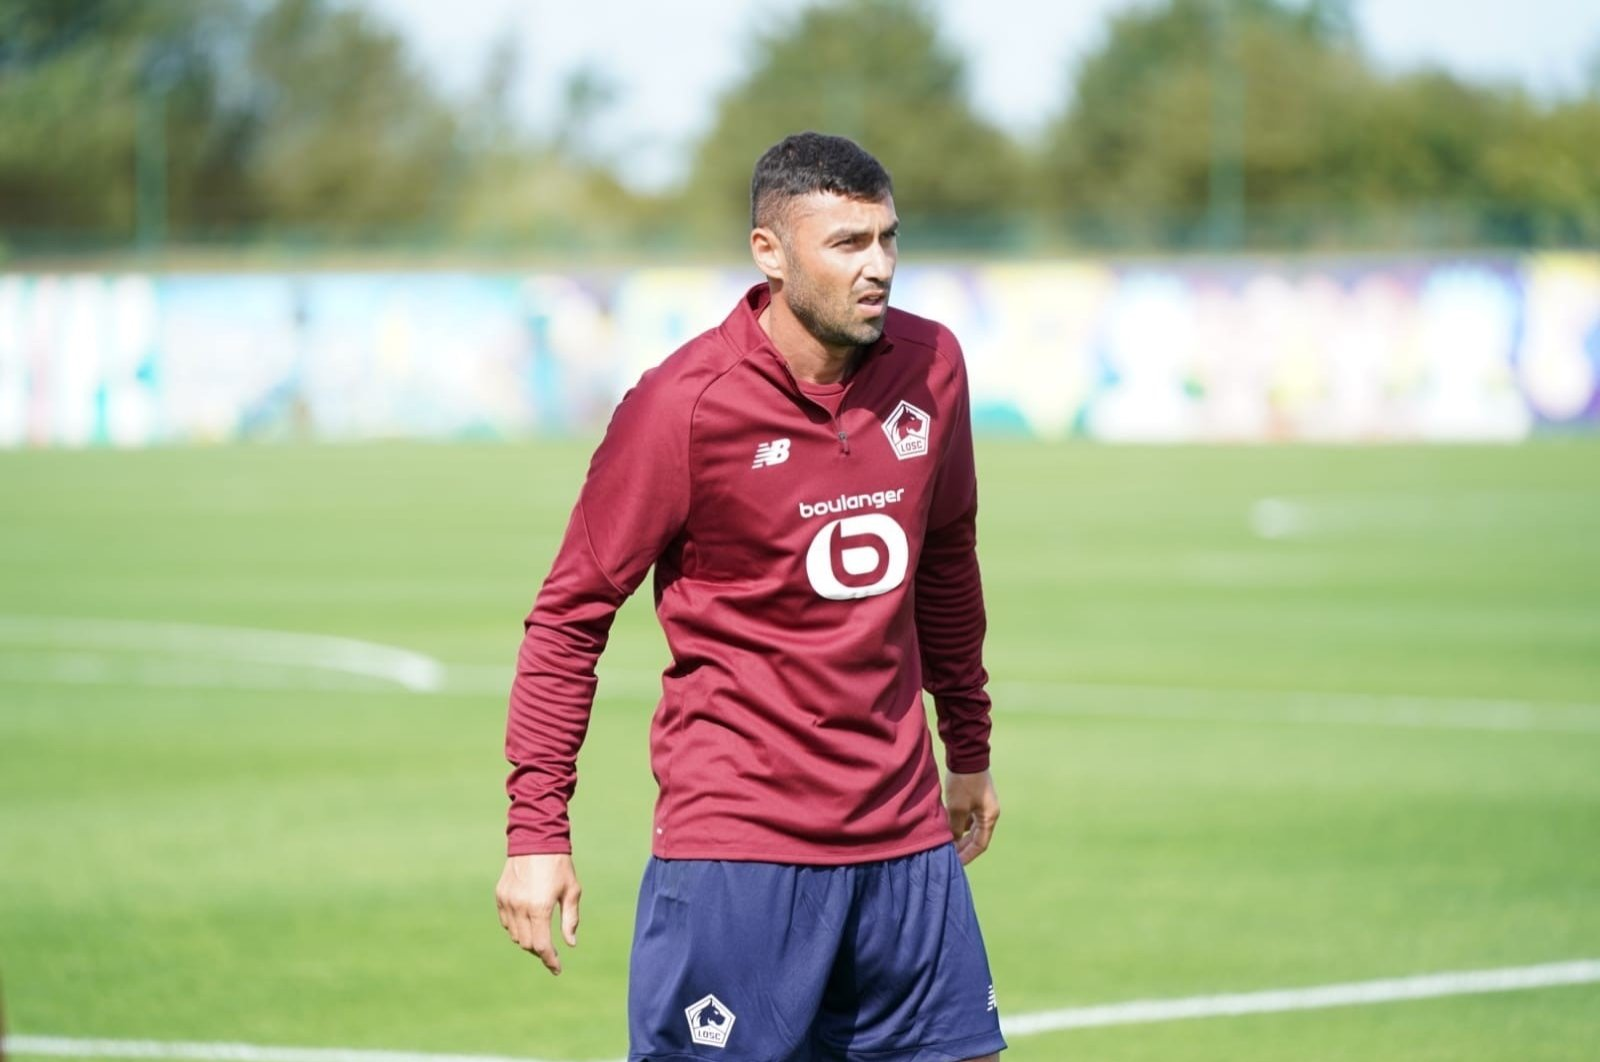 Turkish forward Burak Yılmaz trains with LOSC Lille after signing with the Ligue 1 club in Lille, France, Aug. 1, 2020. (DHA Photo)